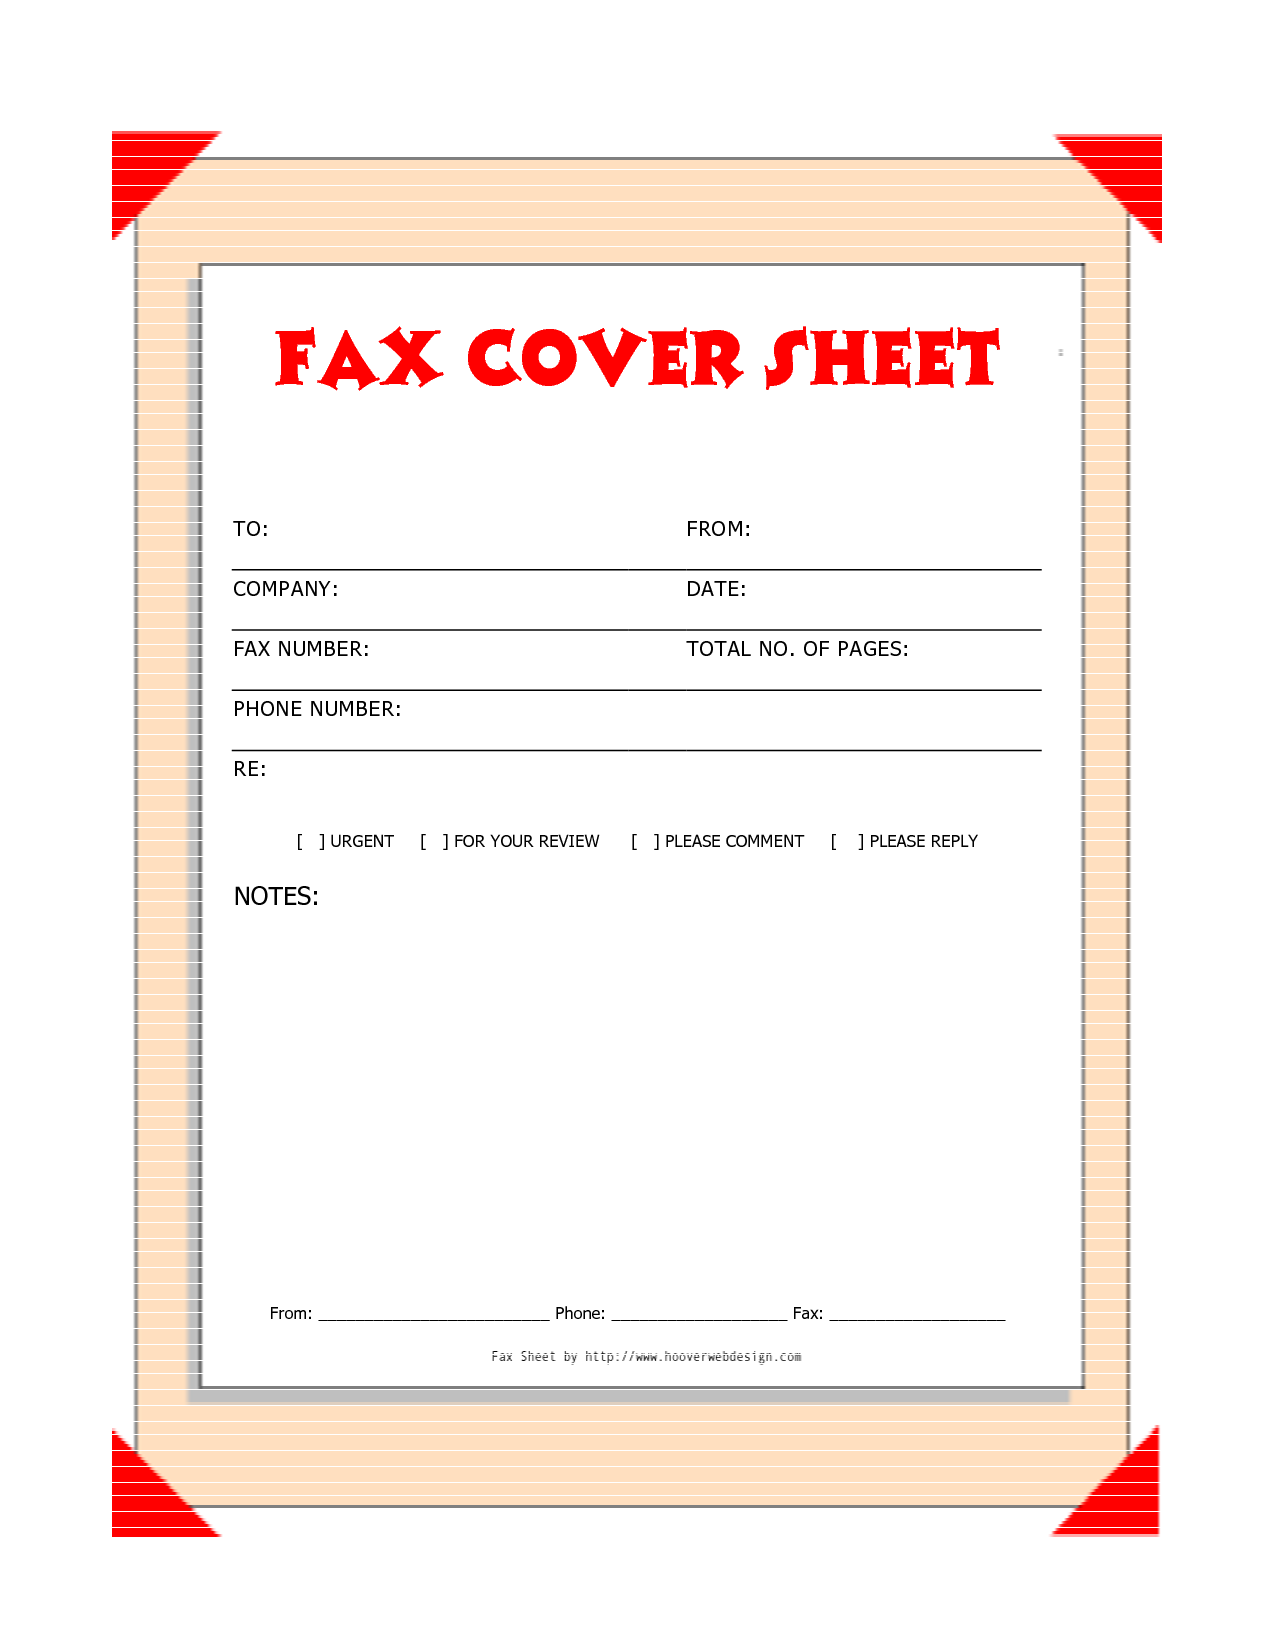 Free Downloads Fax Covers Sheets | Free Printable Fax Cover Sheet Template  Red   Download As  Resume Fax Cover Sheet